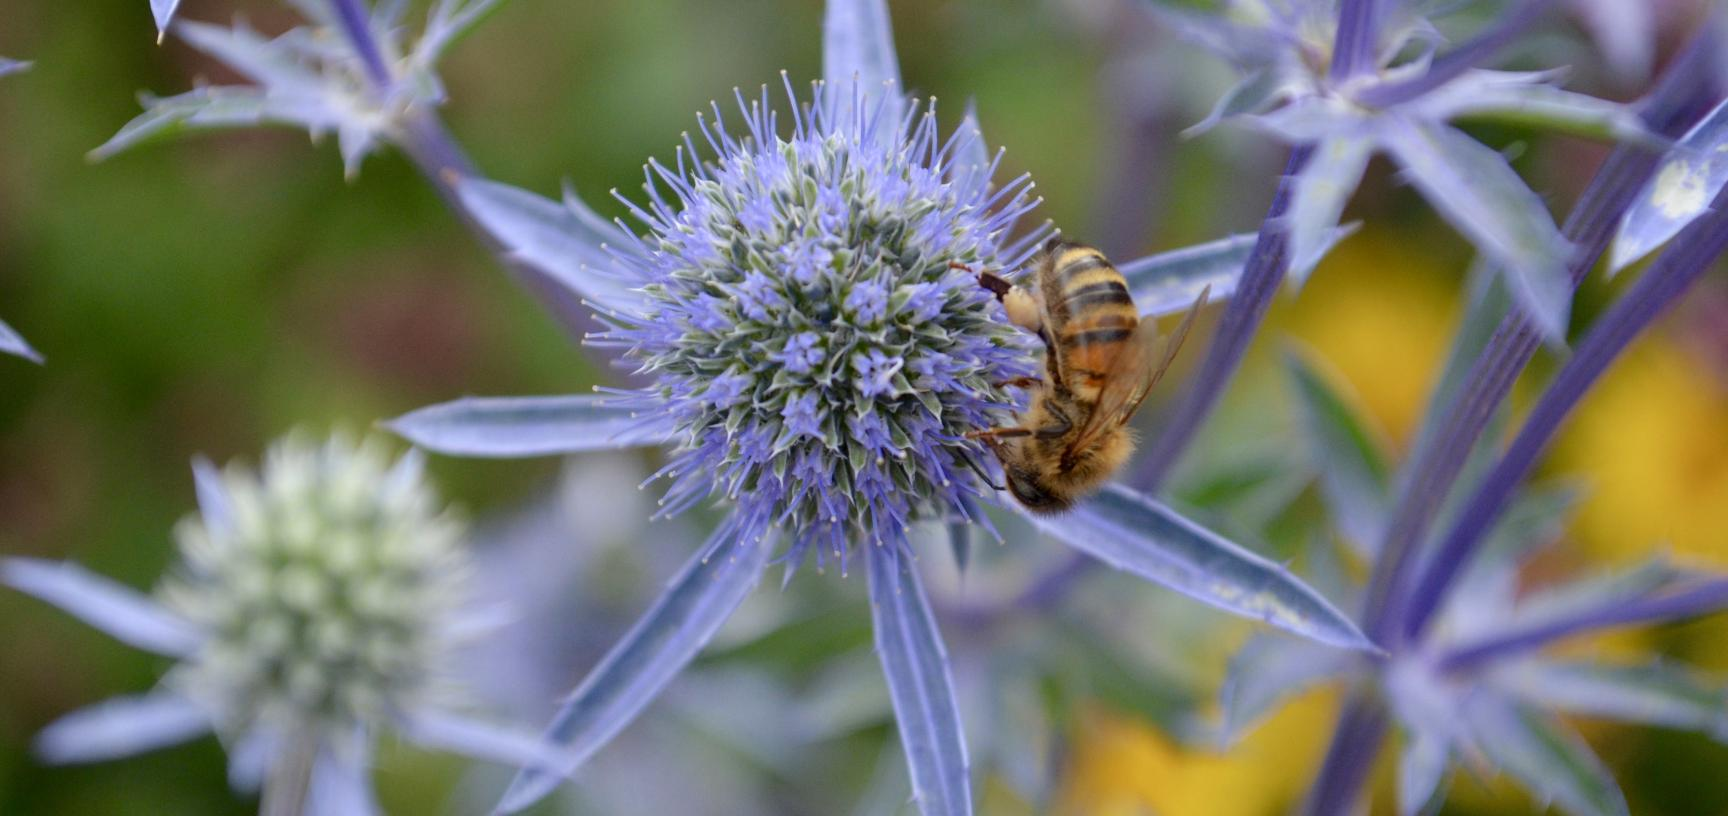 Thistle in the Merton Border with Bee